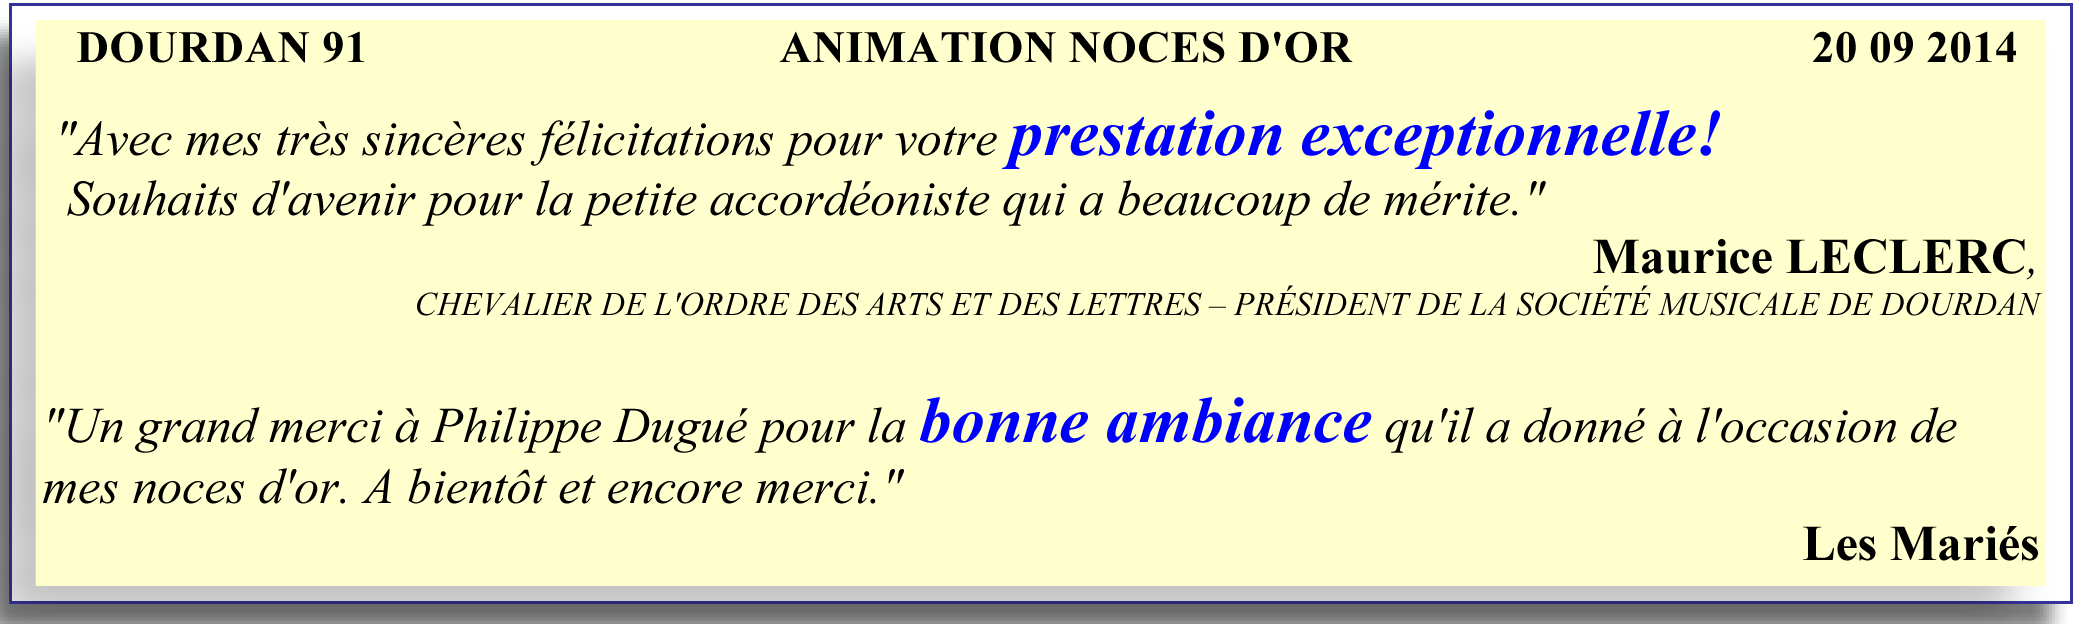 dourdan 91-2014-animation noces d'or-orchestre bavarois